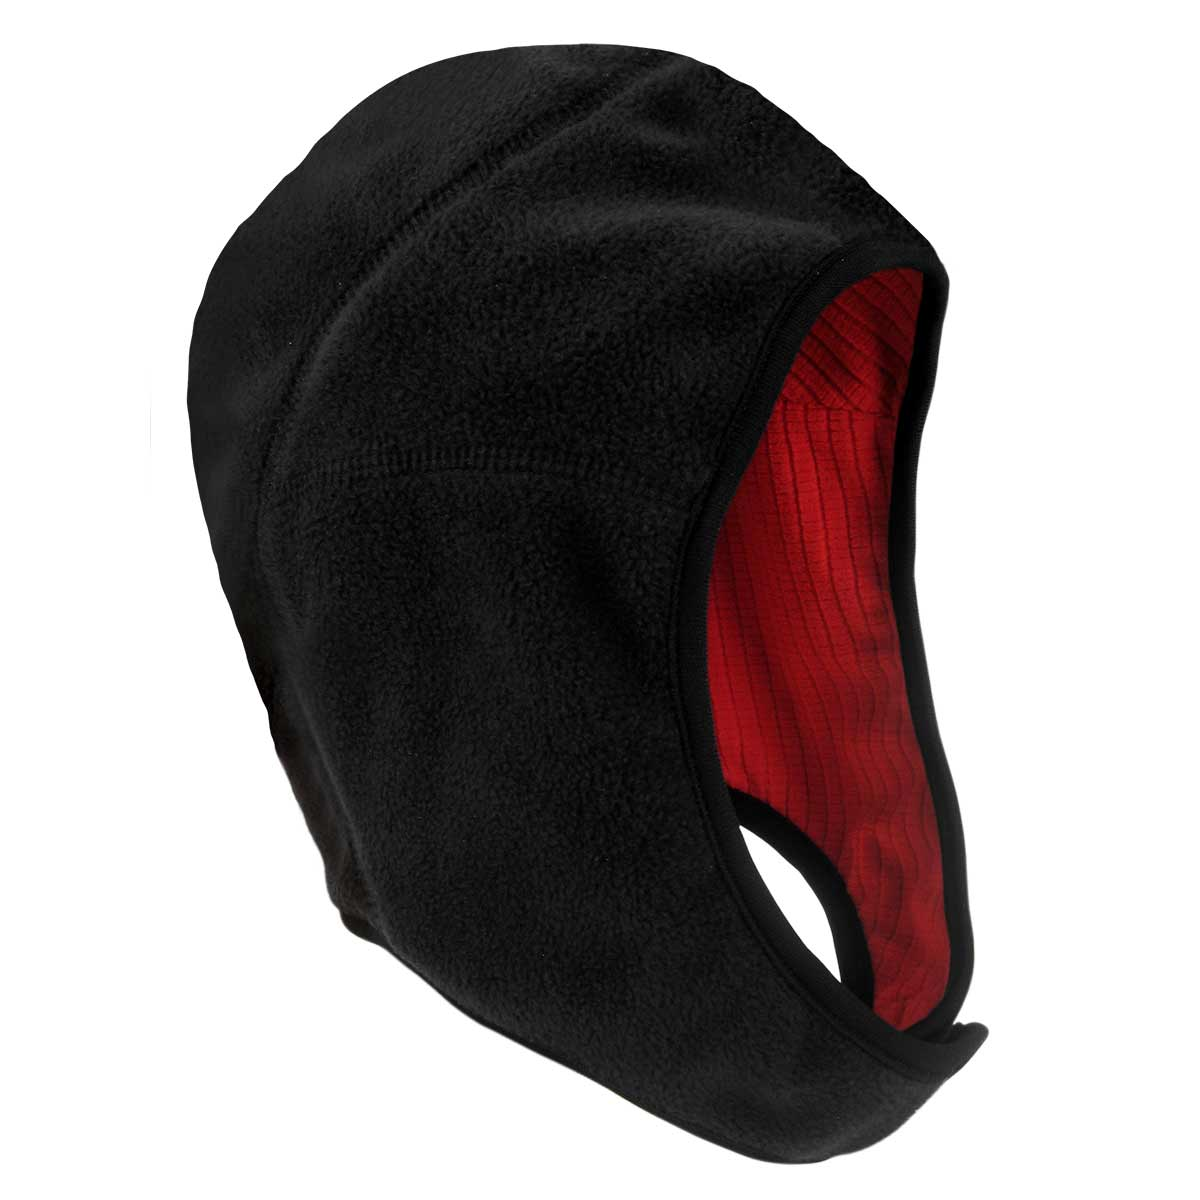 FUZZYHEAD POLAR FLEECE SNUG-FITTING WINTER LINER. Pack 6. WL500